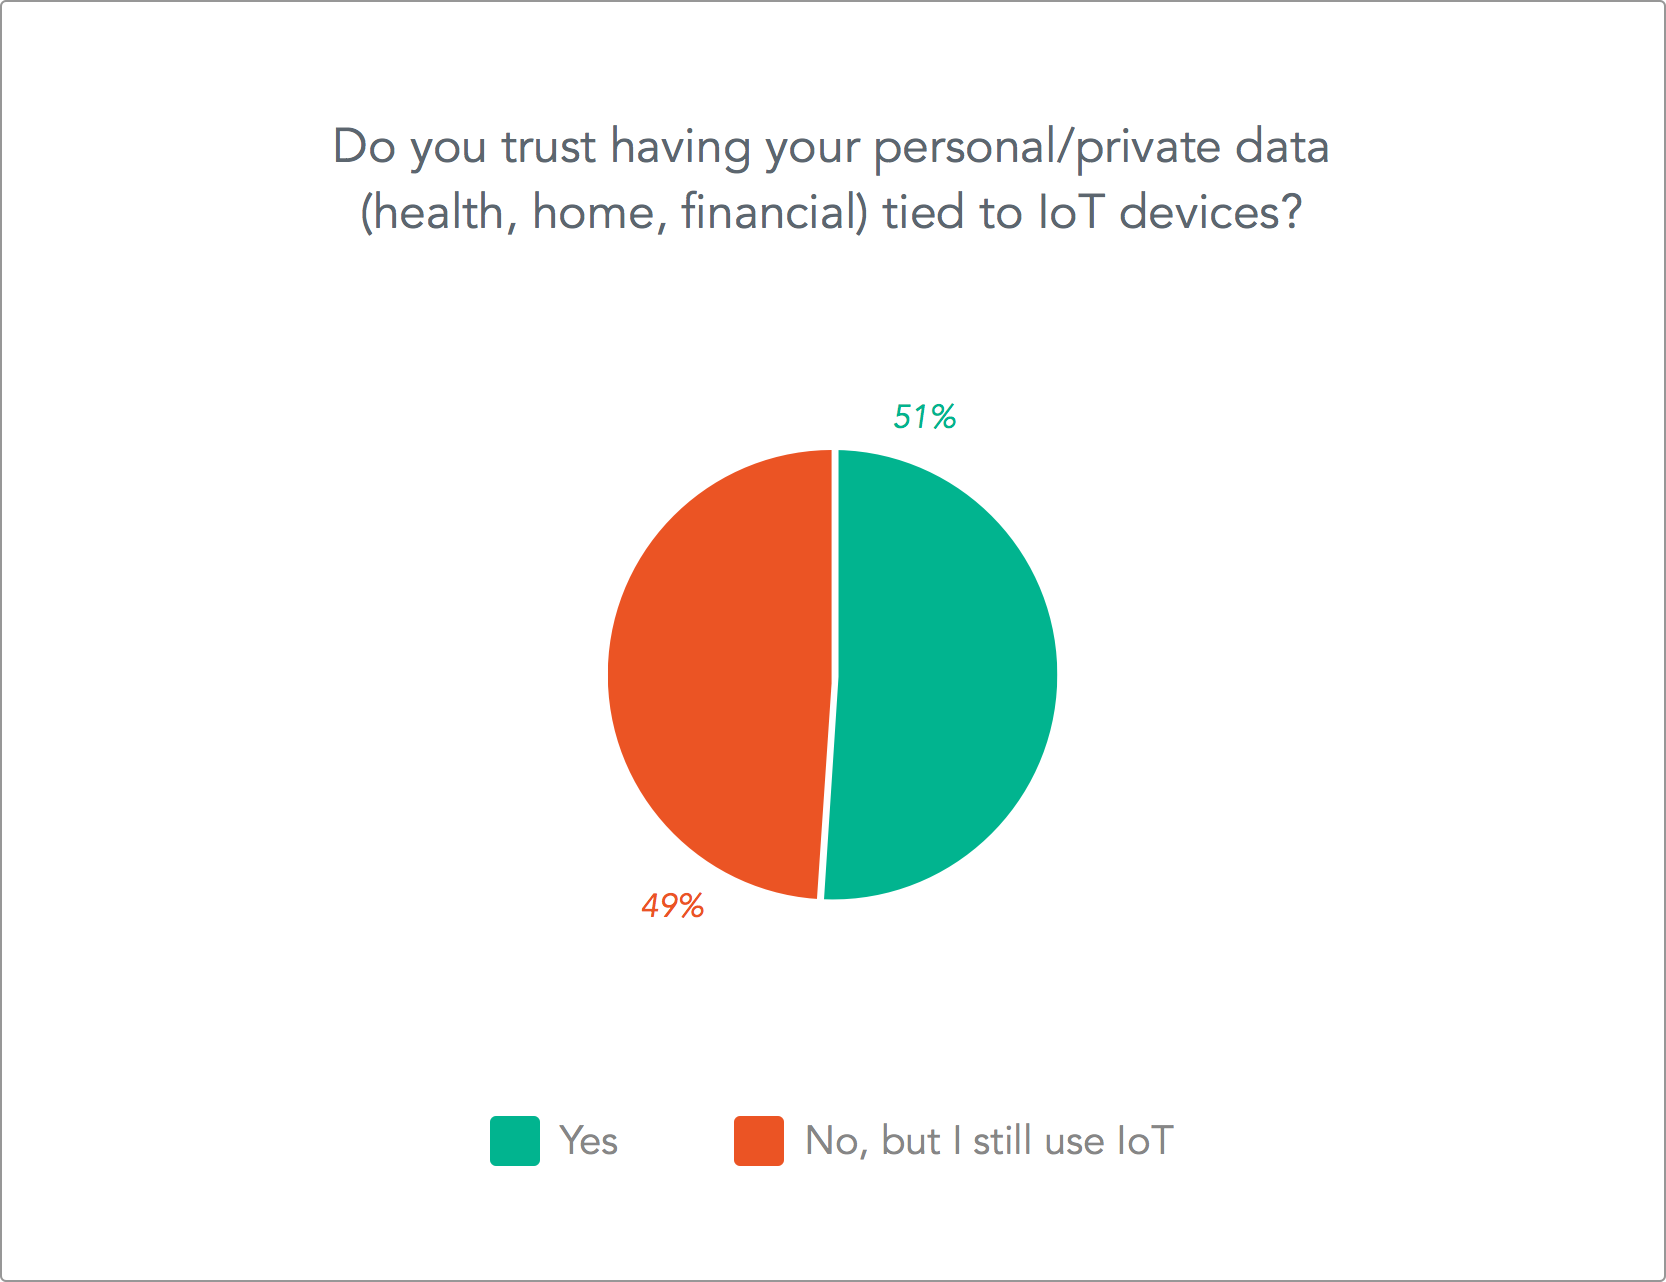 Do you trust your personal data to IoT devices